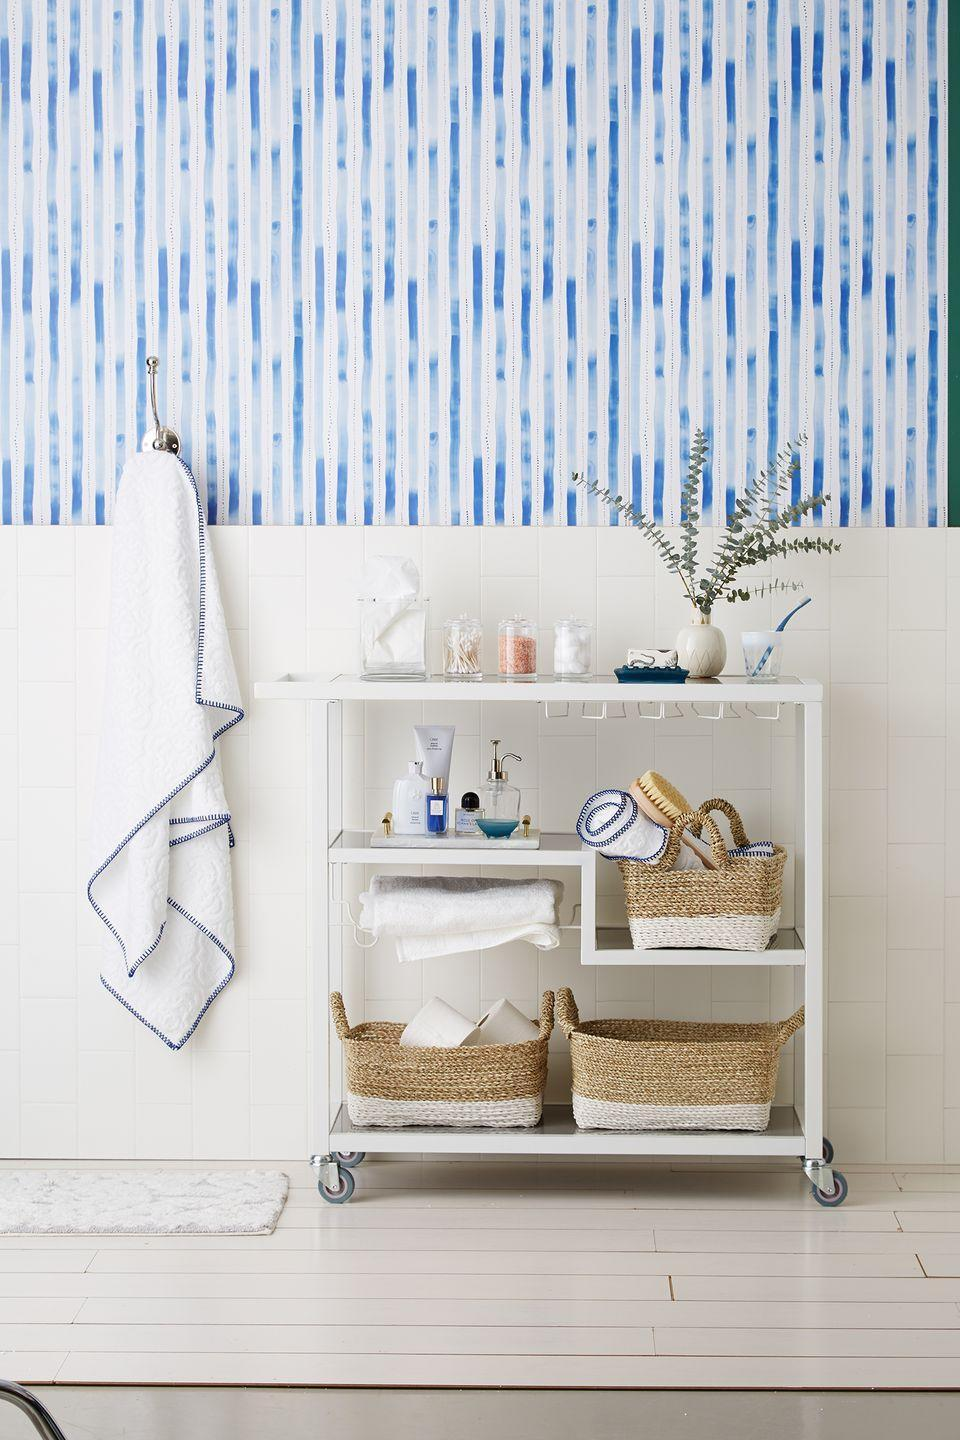 <p>Create a spa-like vibe in your bathroom by styling your bar cart with eucalyptus and woven baskets full of toiletries. </p>